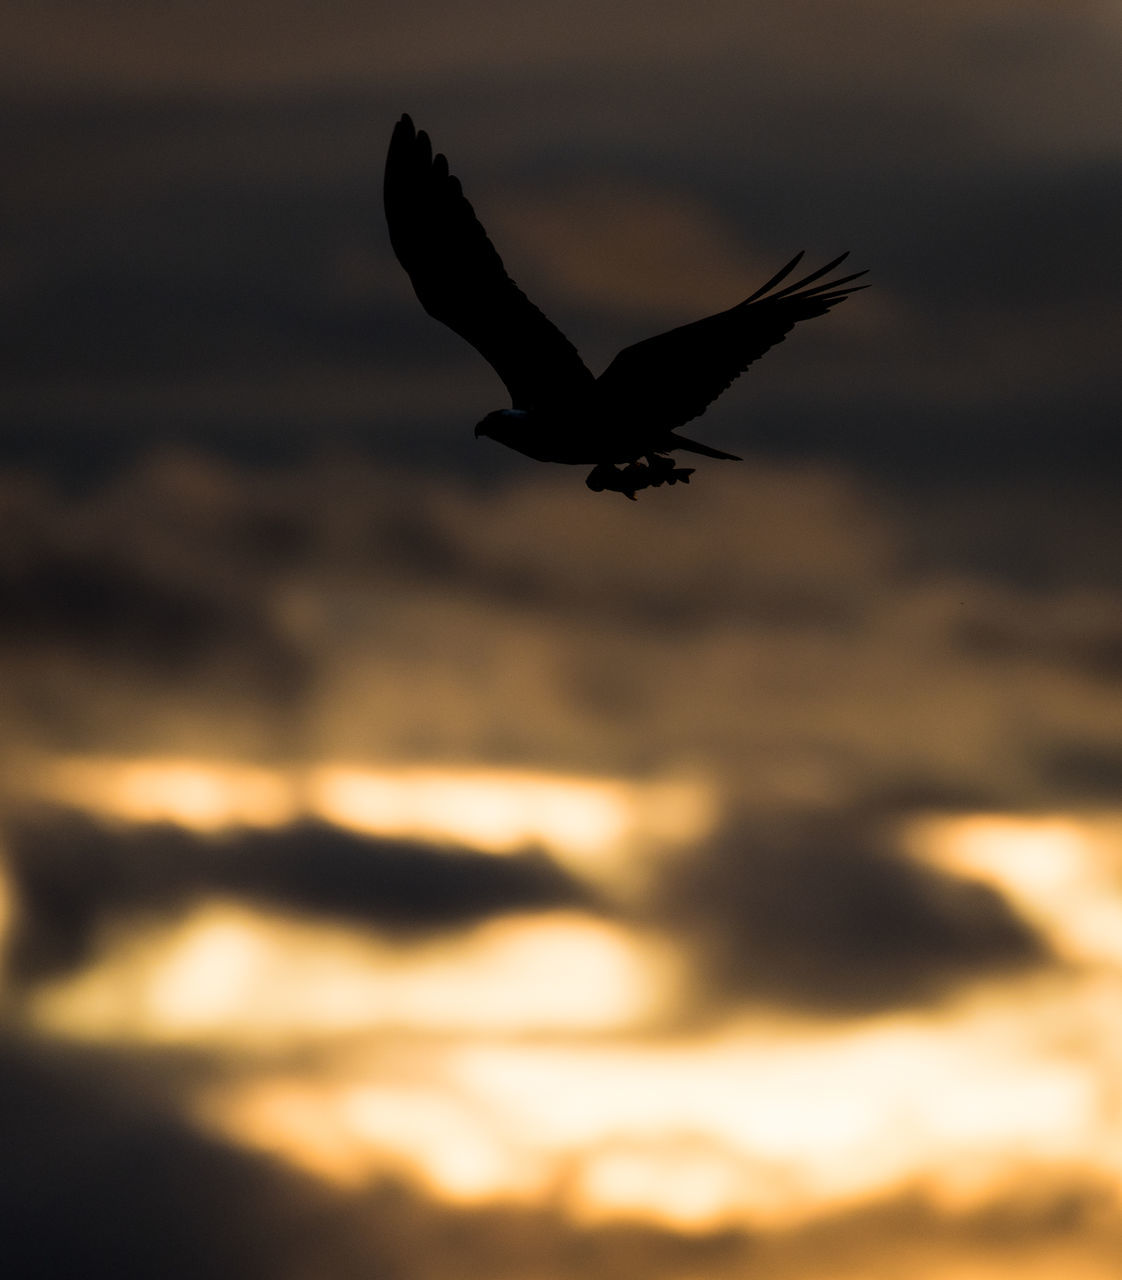 sunset, bird, flying, animals in the wild, nature, one animal, spread wings, animal themes, animal wildlife, silhouette, mid-air, beauty in nature, no people, sky, outdoors, motion, water, sea, day, bird of prey